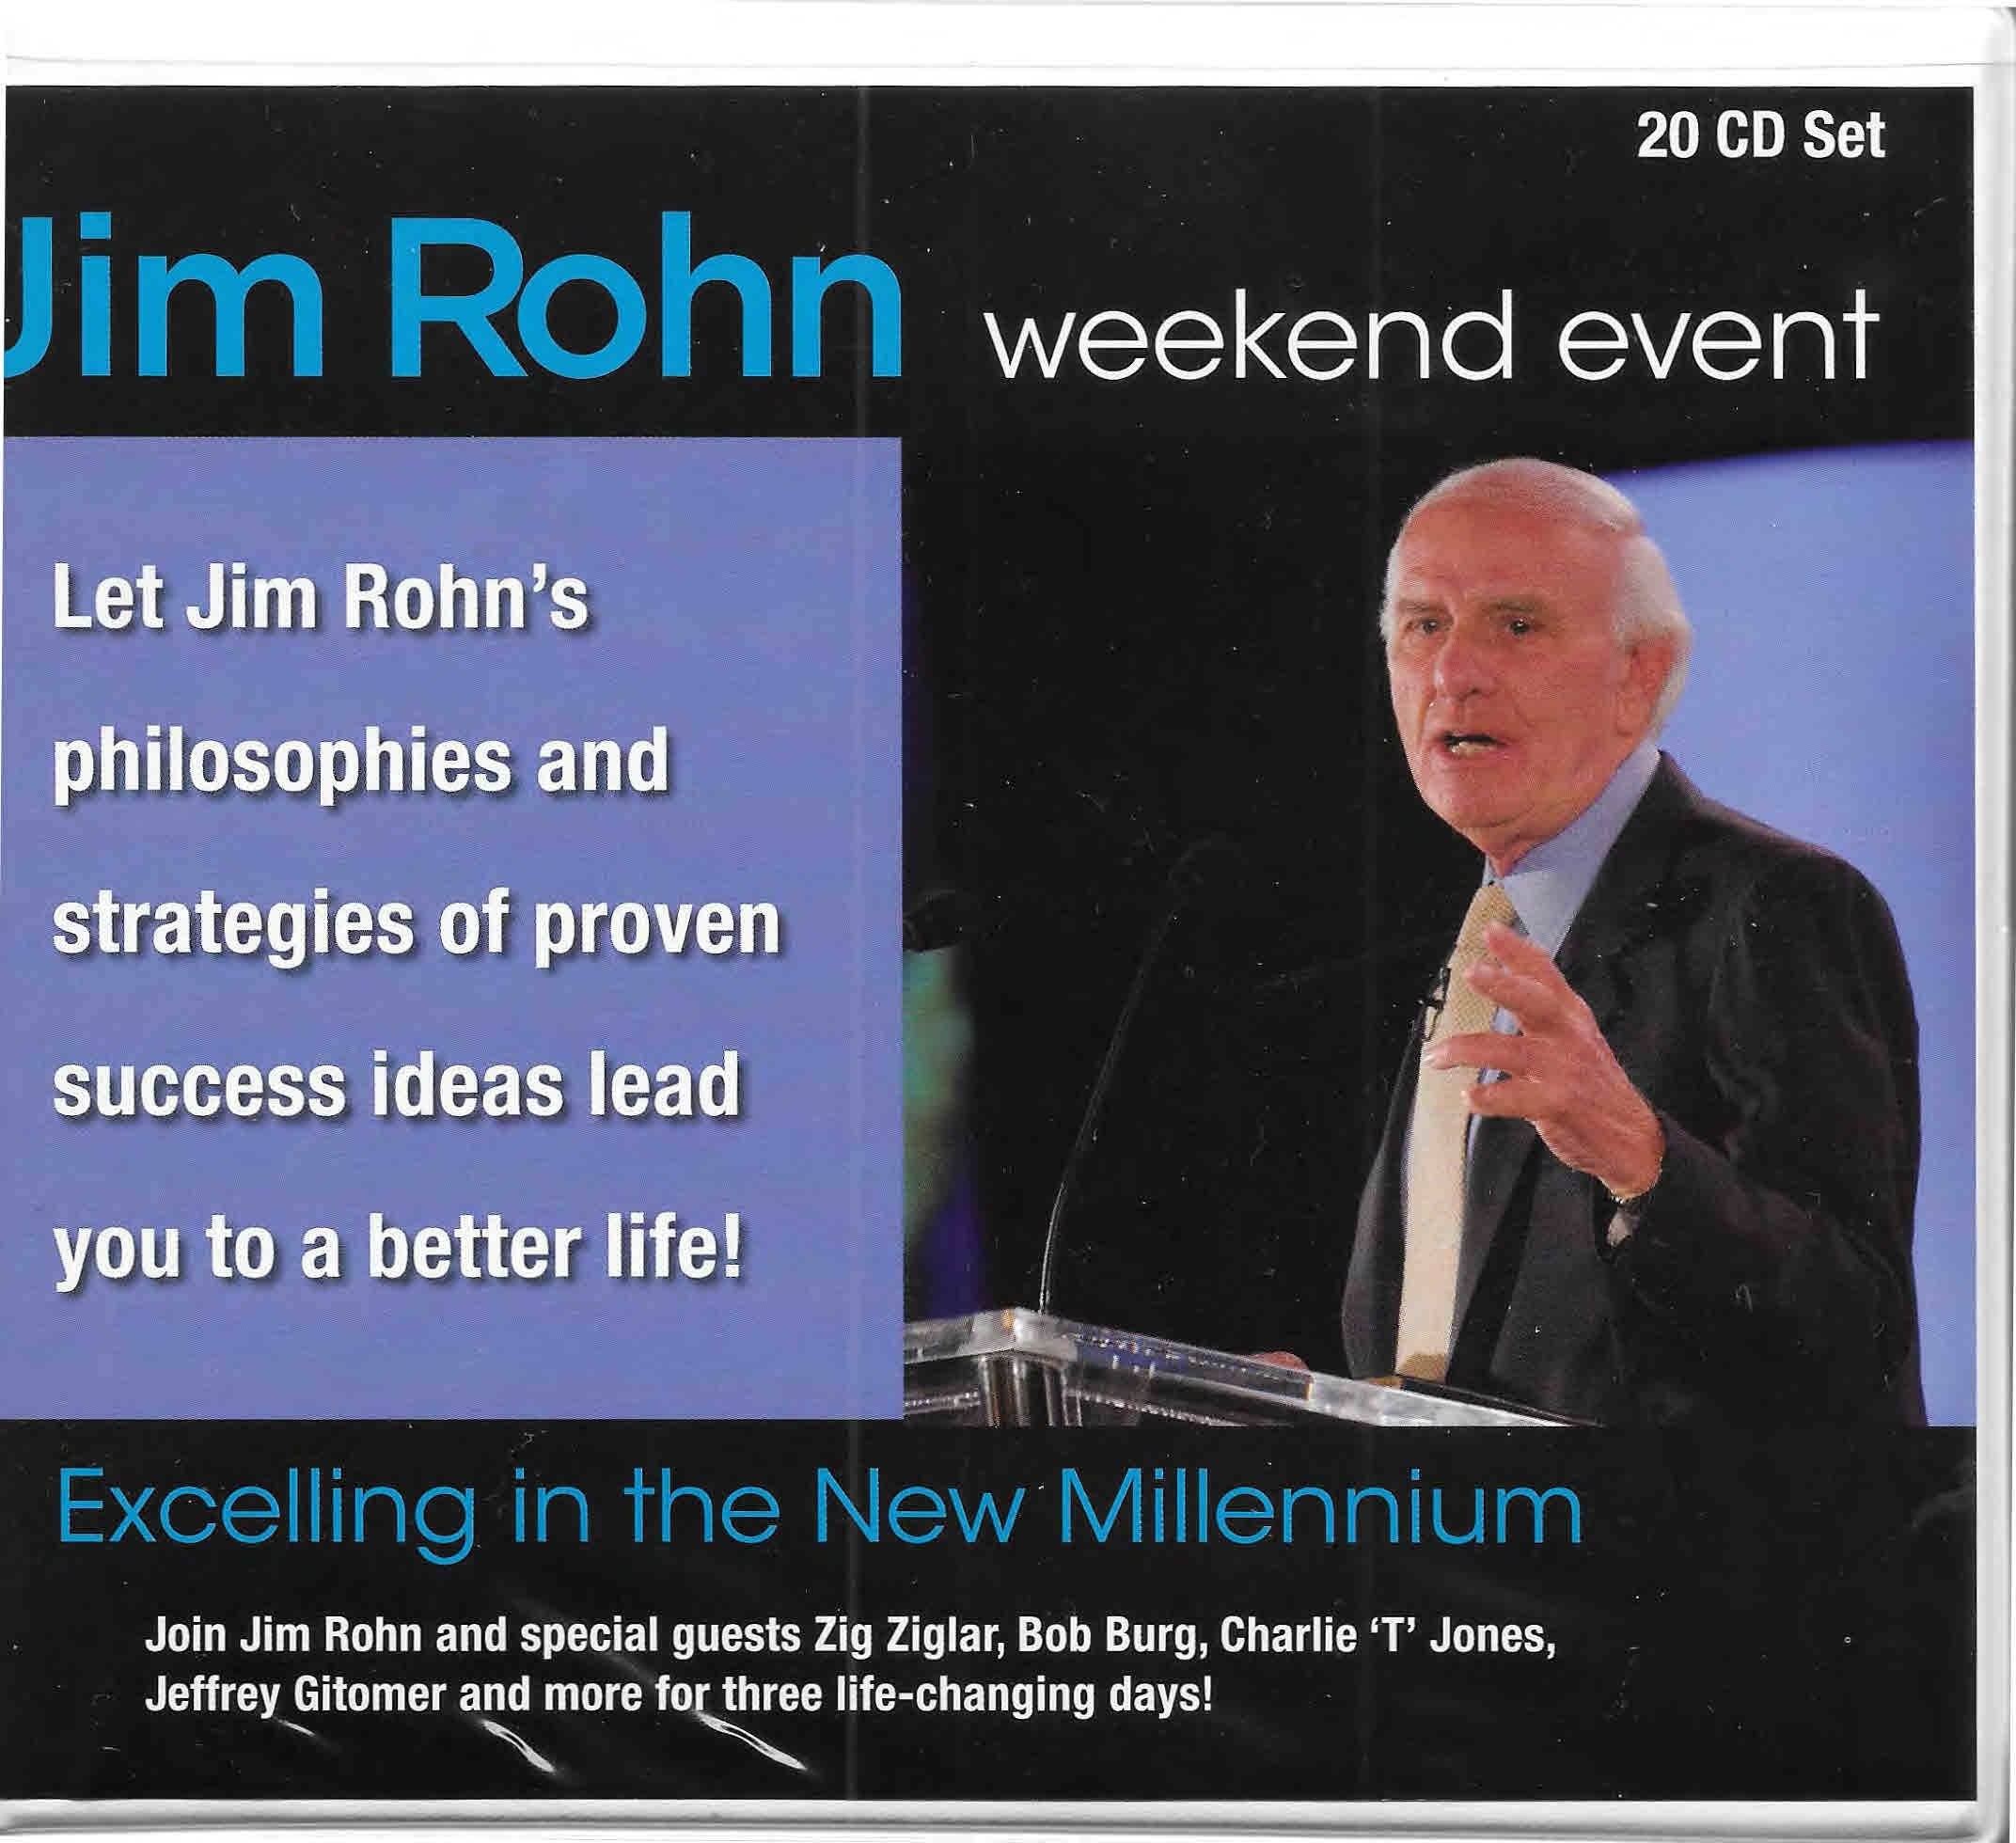 Jim Rohn Weekend Event: Excelling in the New Millennium ...